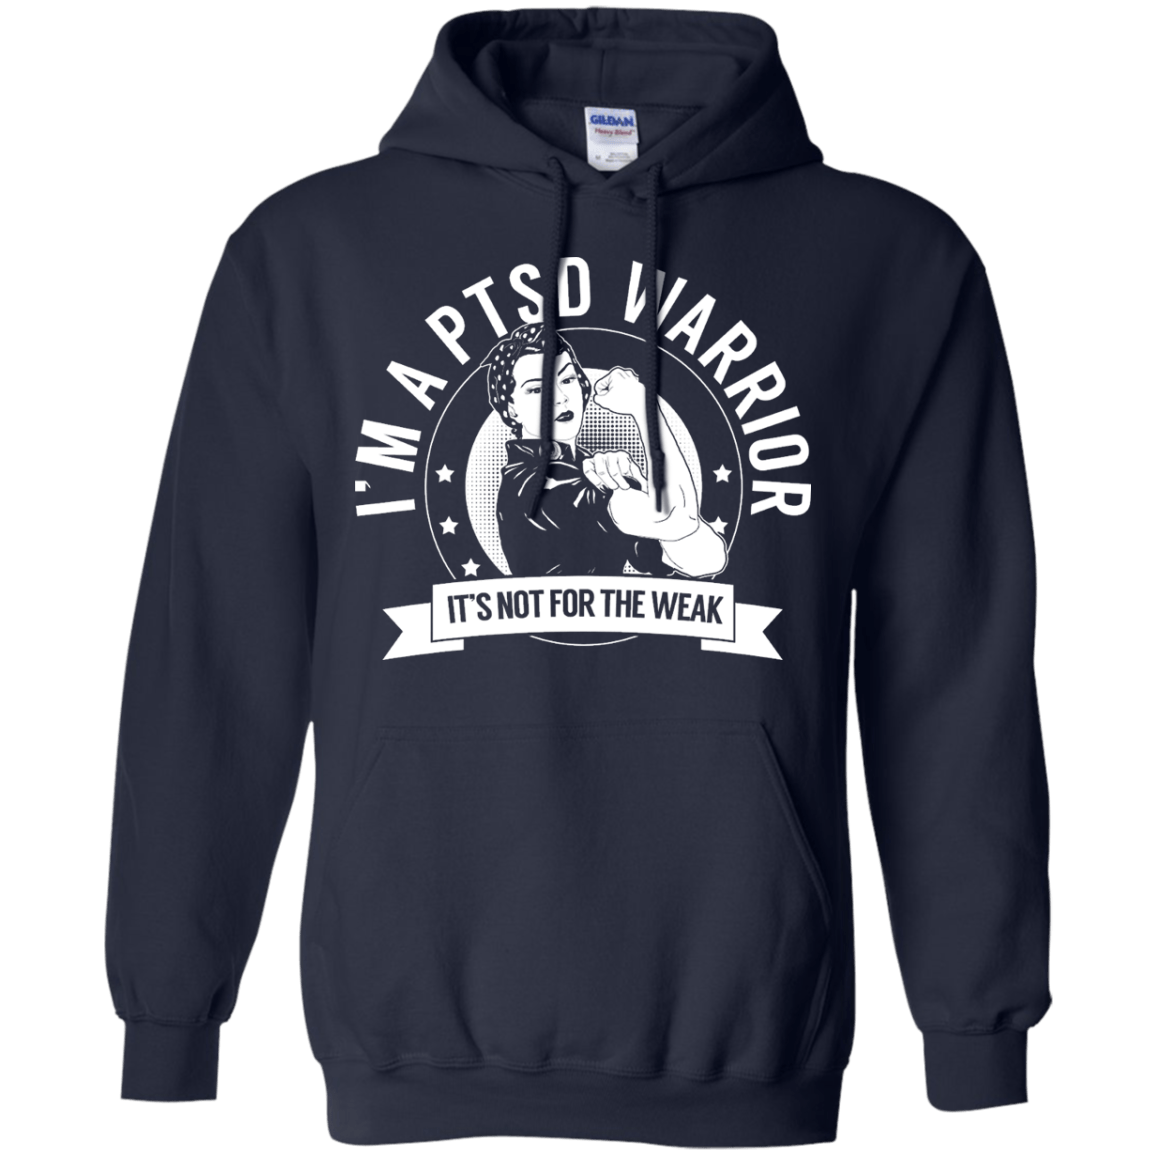 Hoodies - Post Traumatic Stress Disorder - PTSD Warrior Not For The Weak Pullover Hoodie 8 Oz